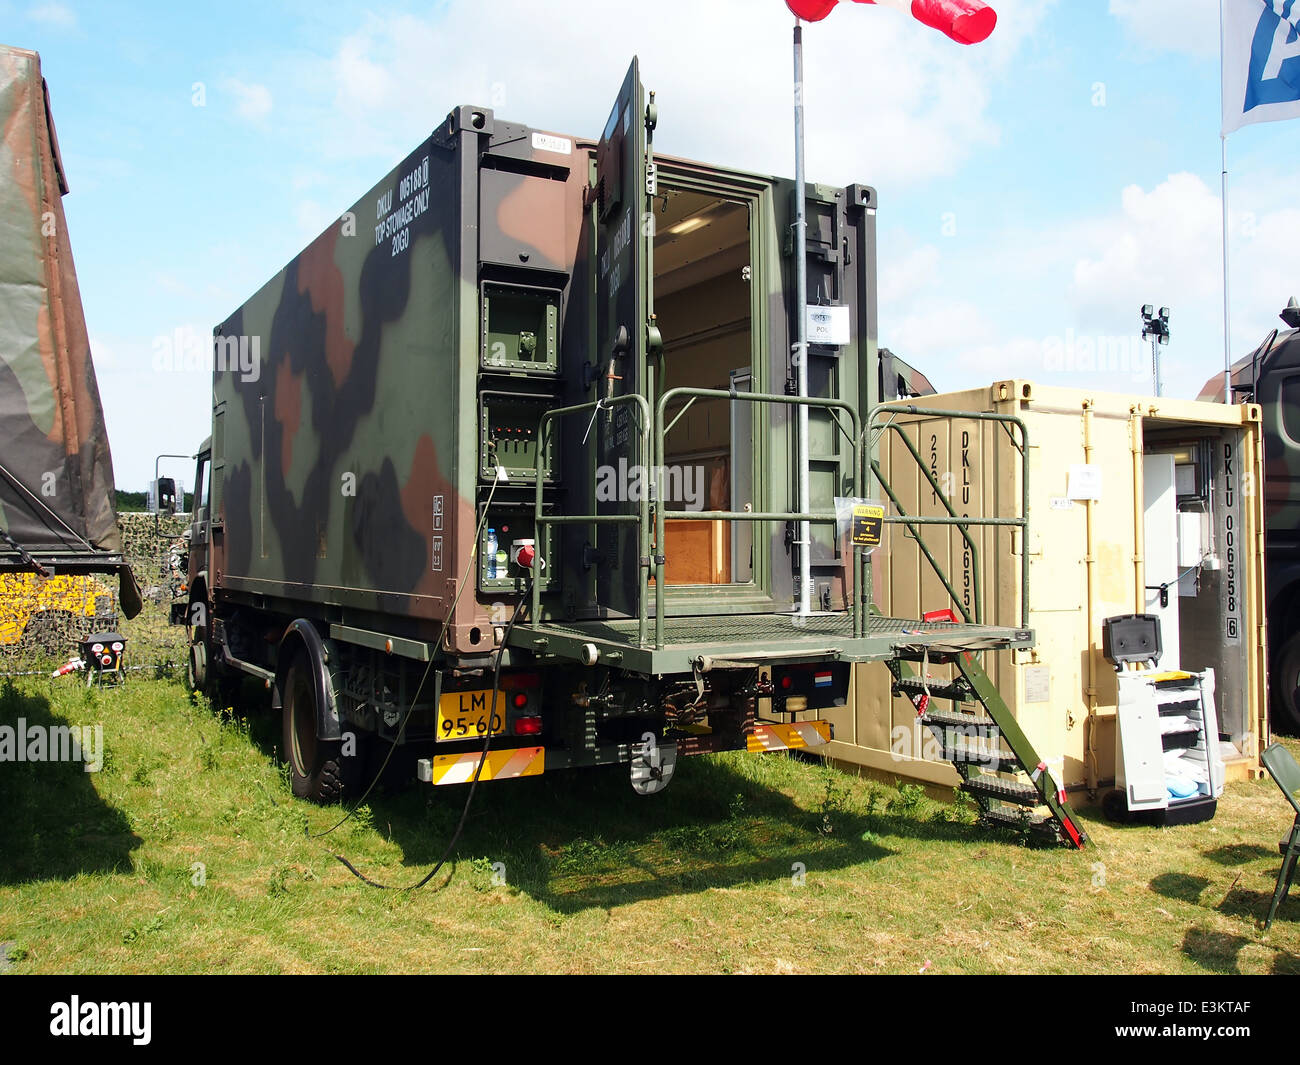 POL (Petrol, Oil & Lubric) unit of the Royal Dutch Army - Stock Image